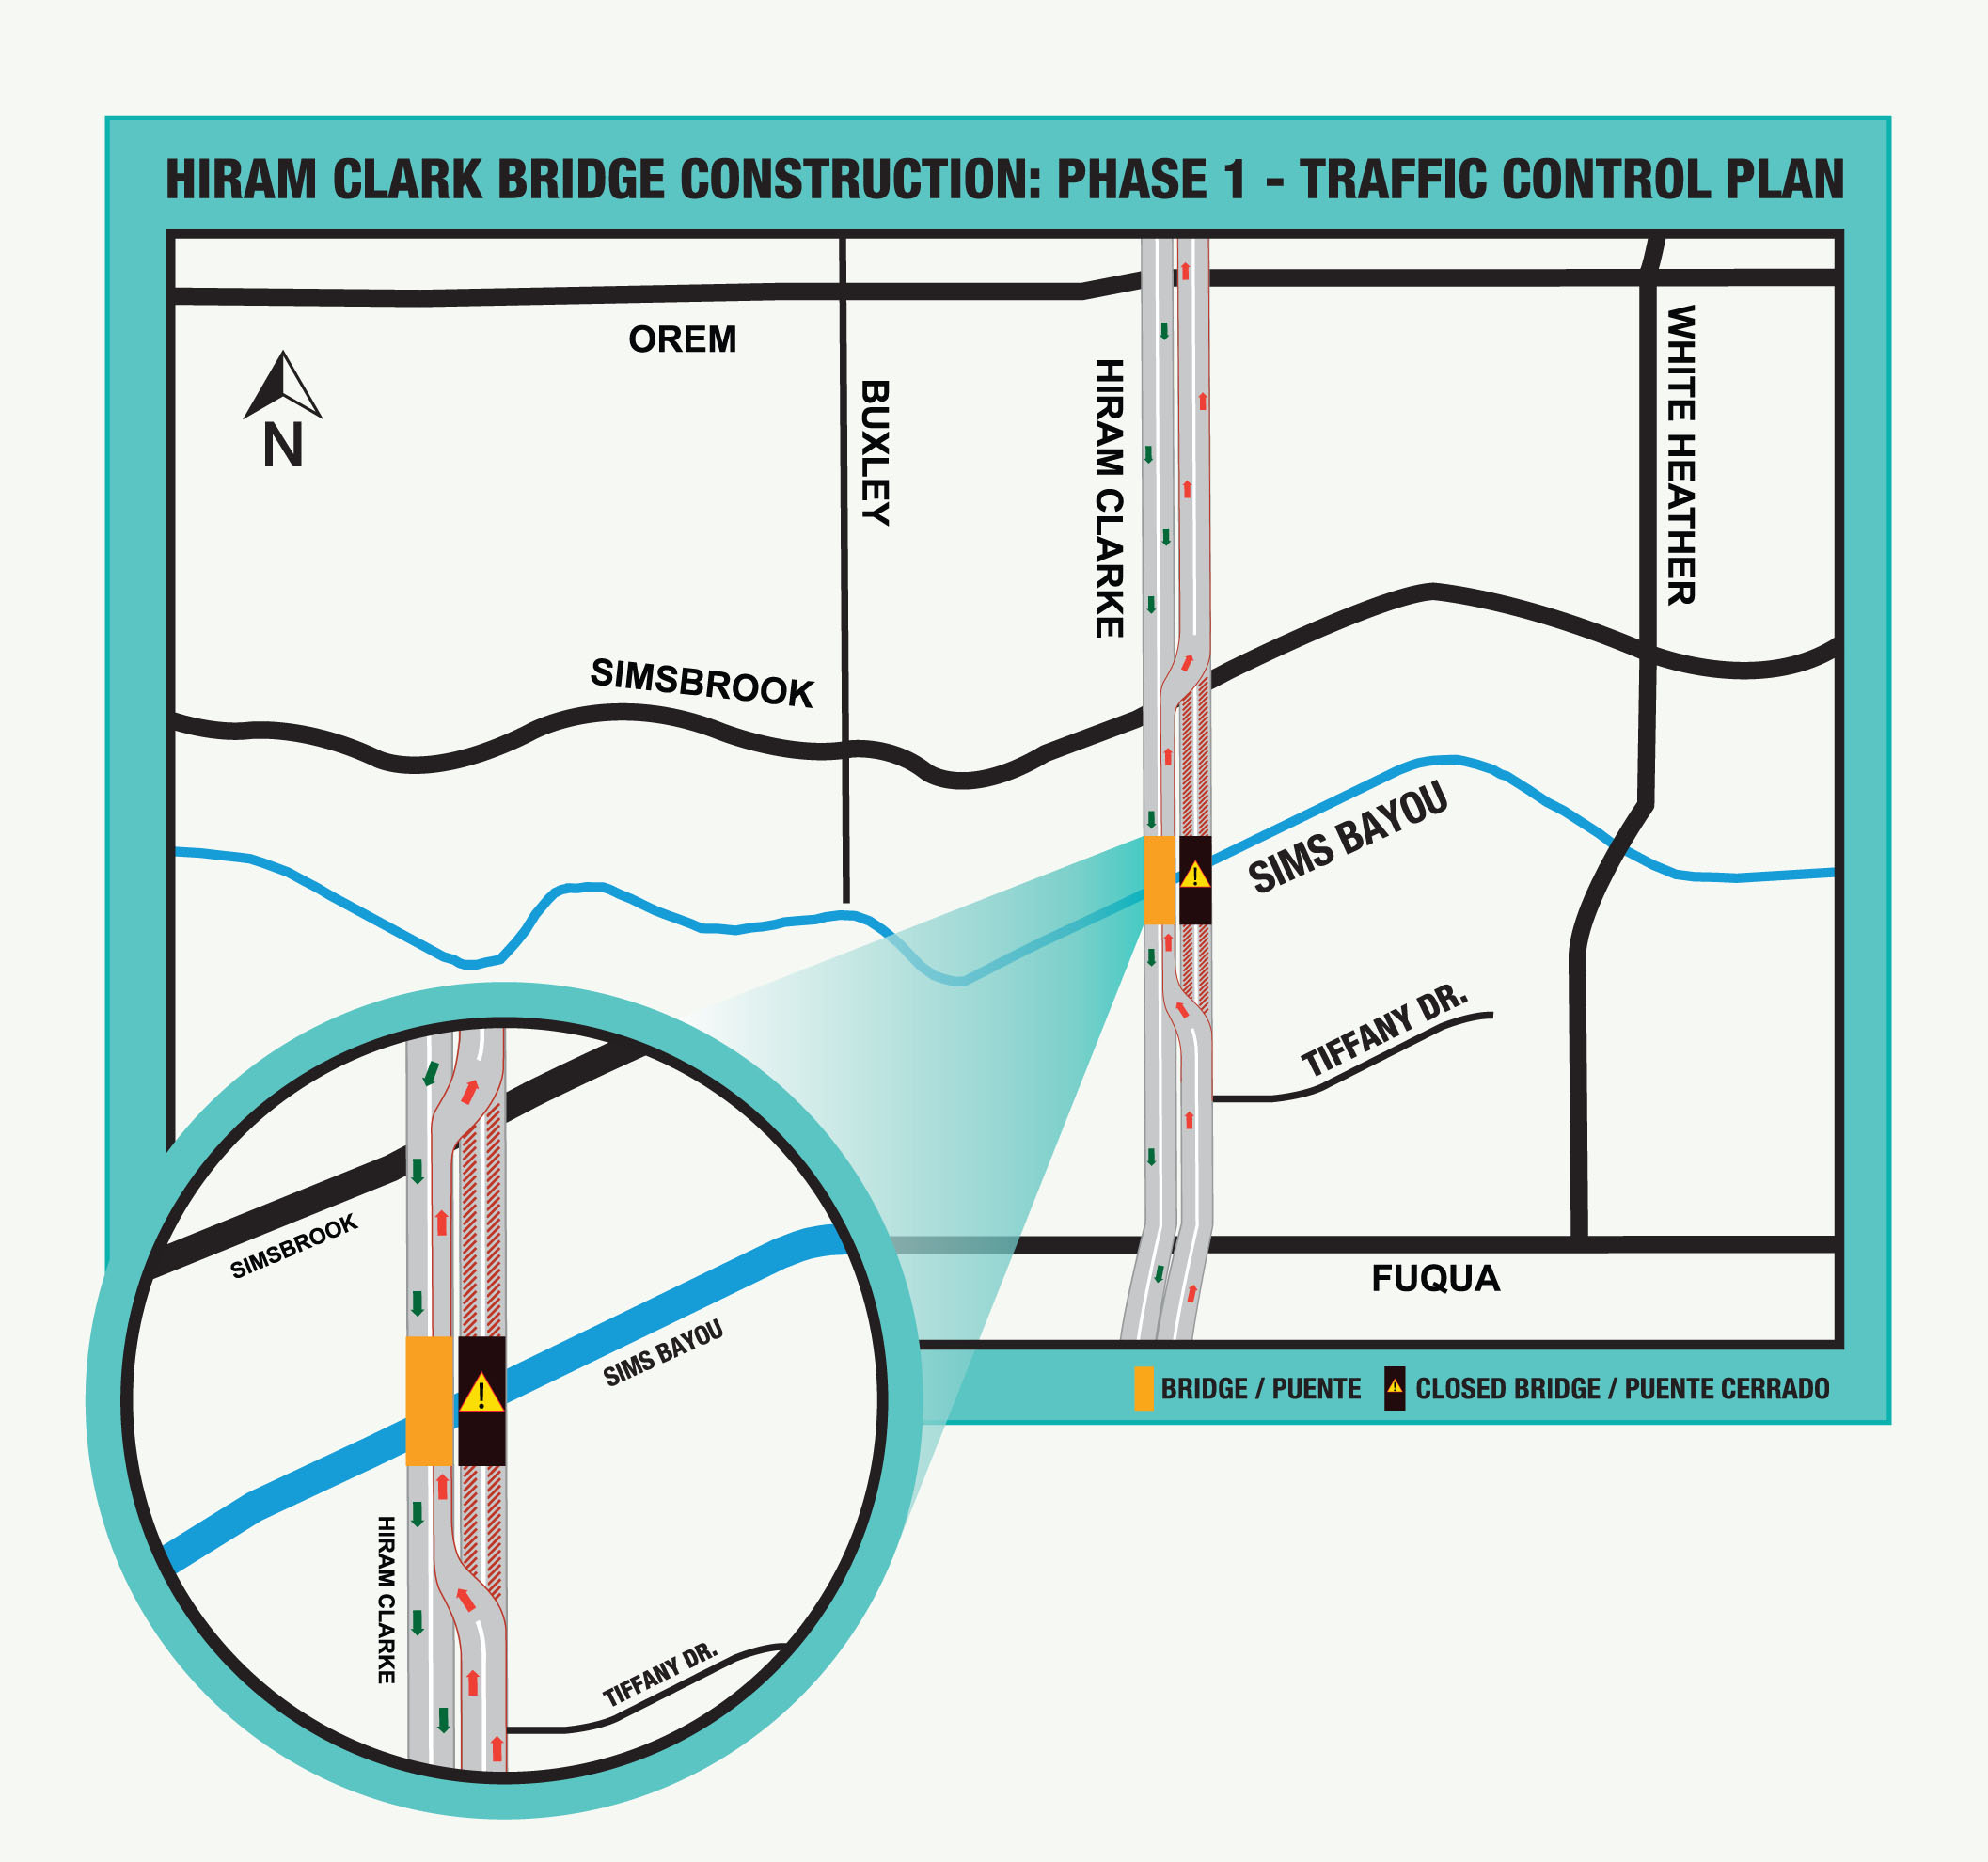 News router information center for harris county flood control hiram clarke bridge construction phase 1 traffic control plan mapg pooptronica Image collections